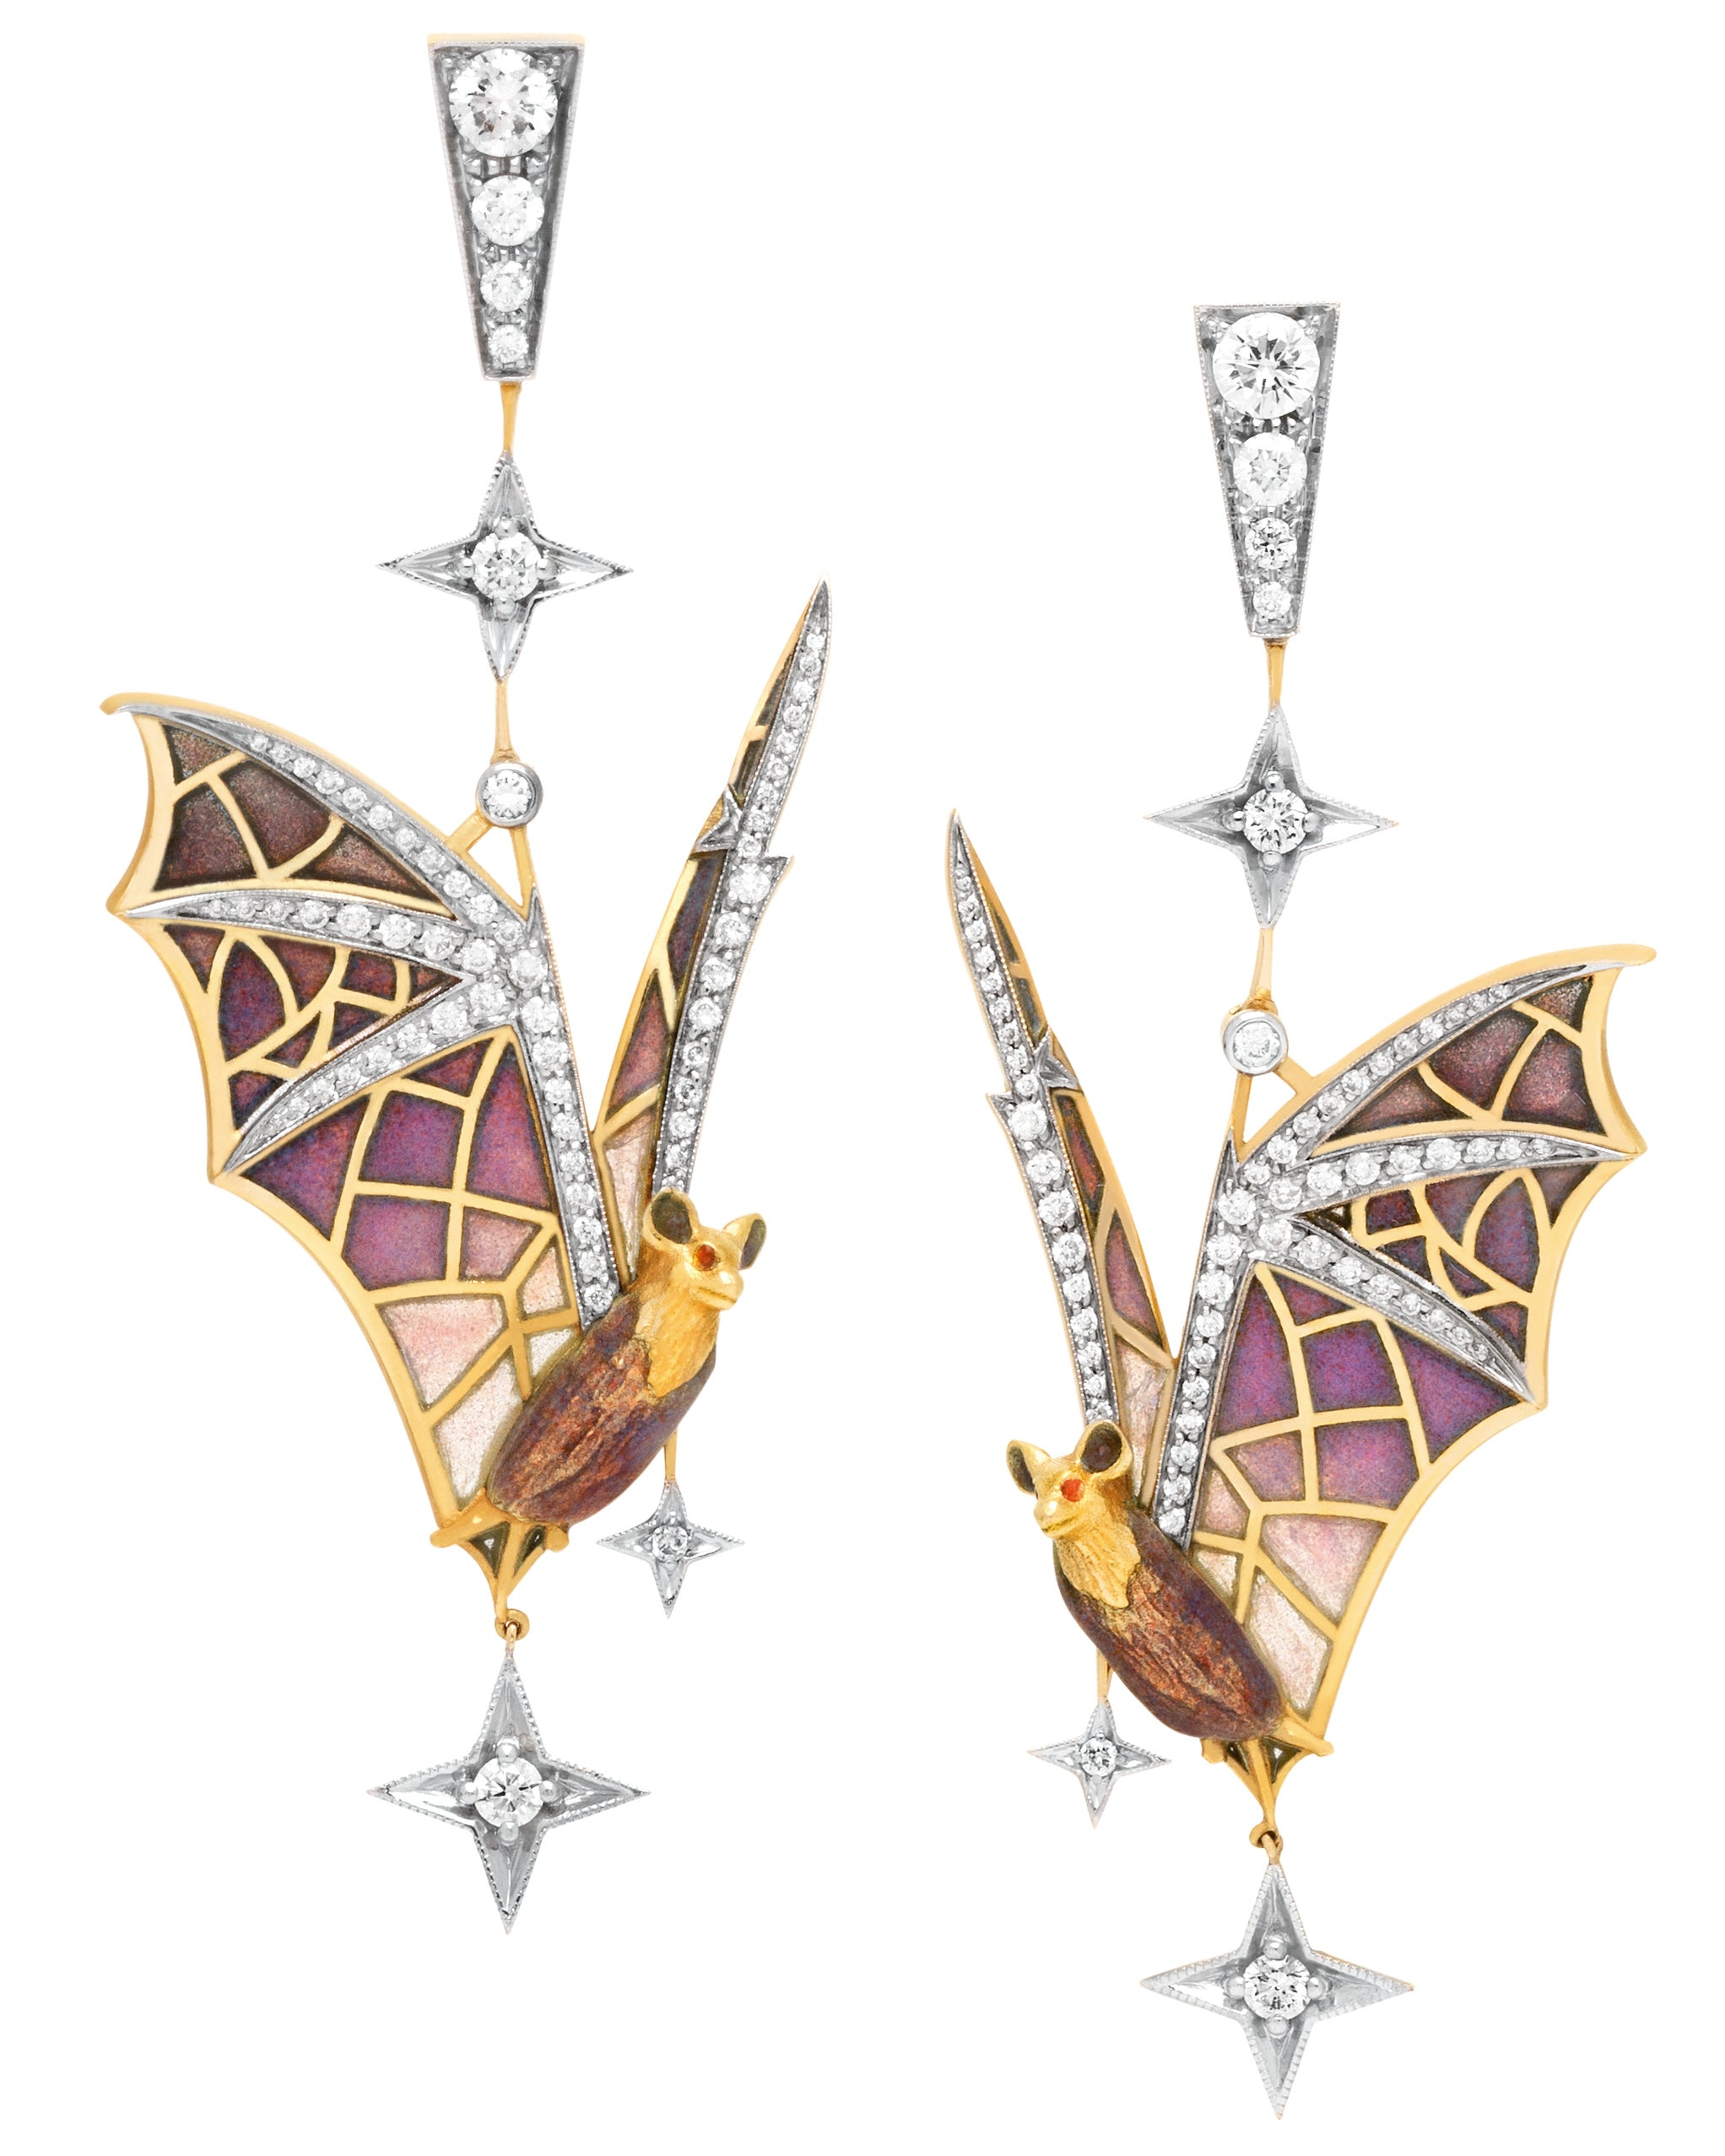 Masriera Art Nouveau Bat Diamond Earrings